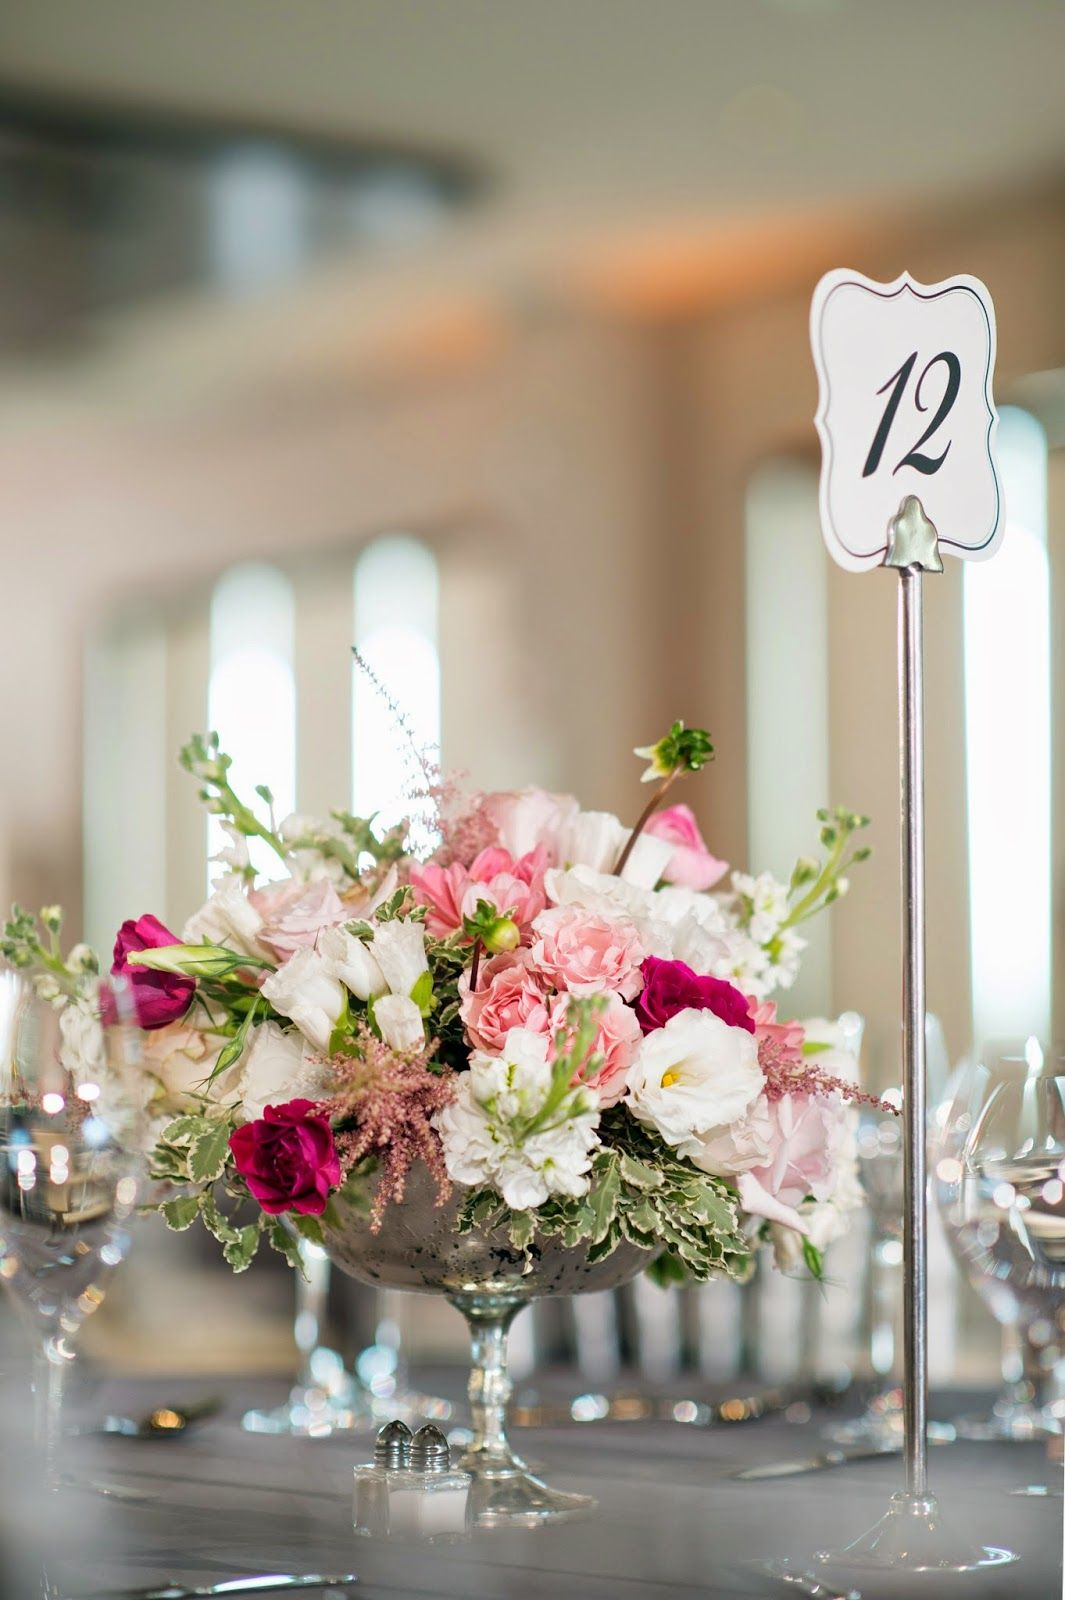 Studio Dbi Pink And White Flower Centerpiece In Mercury Glass